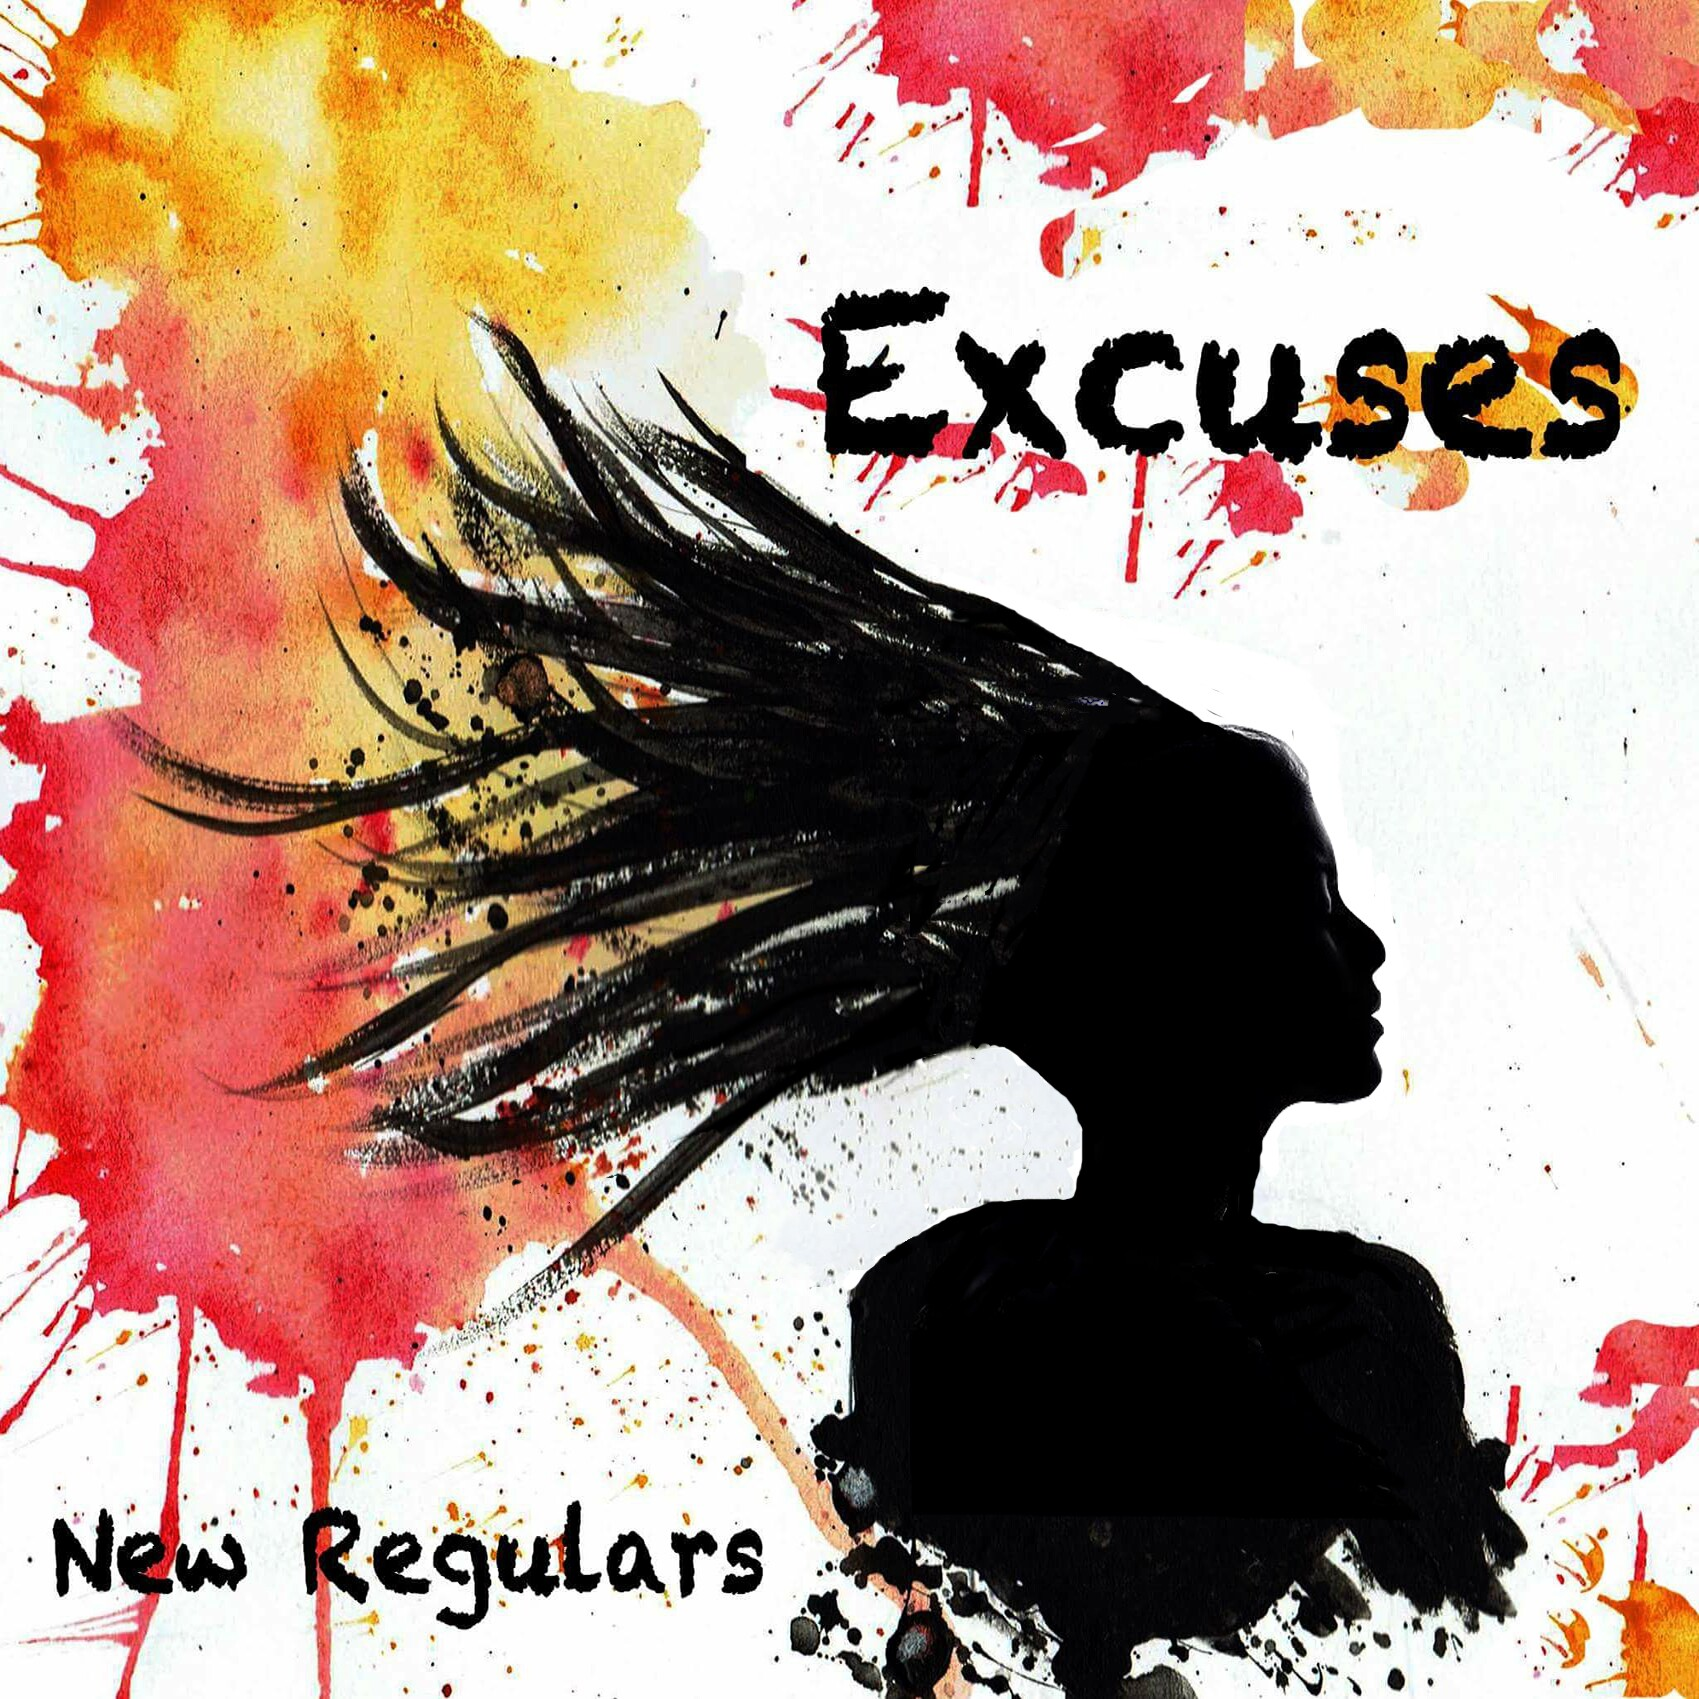 New Regulars - Excuses